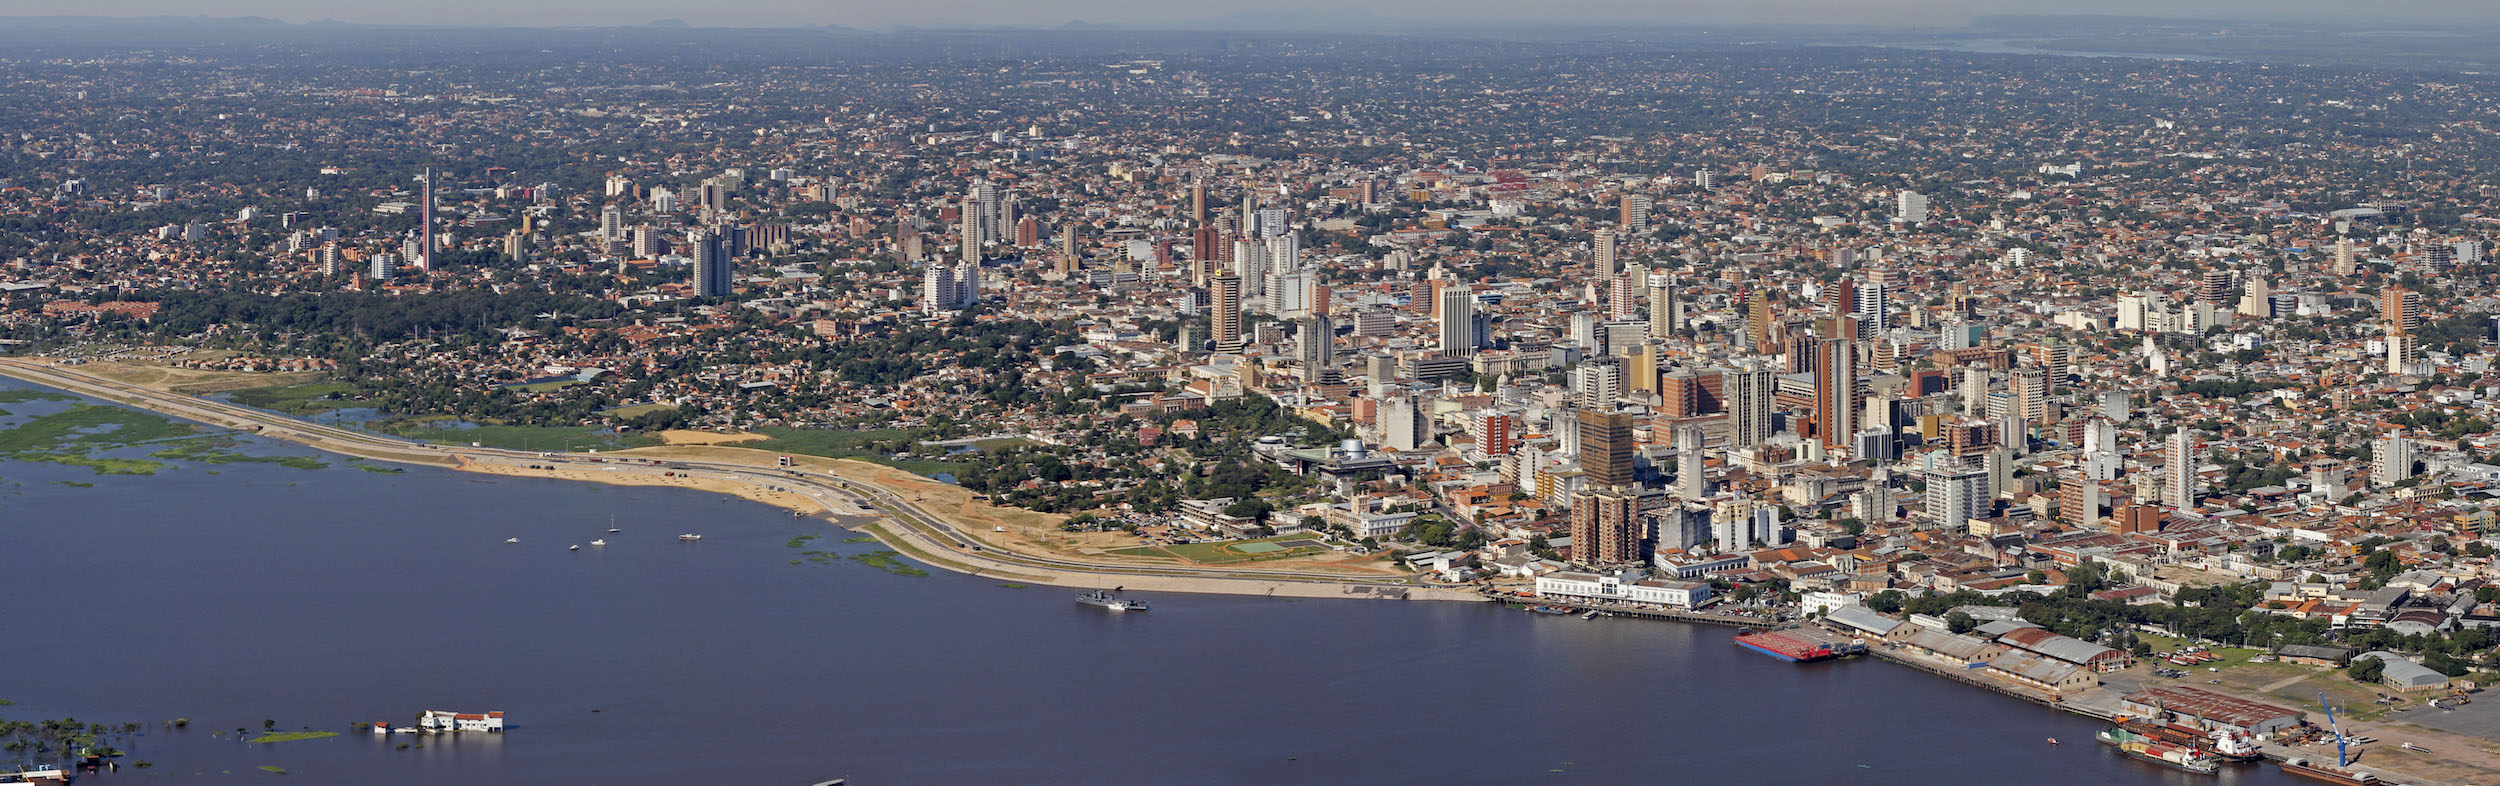 Asuncion, capital of Paraguay